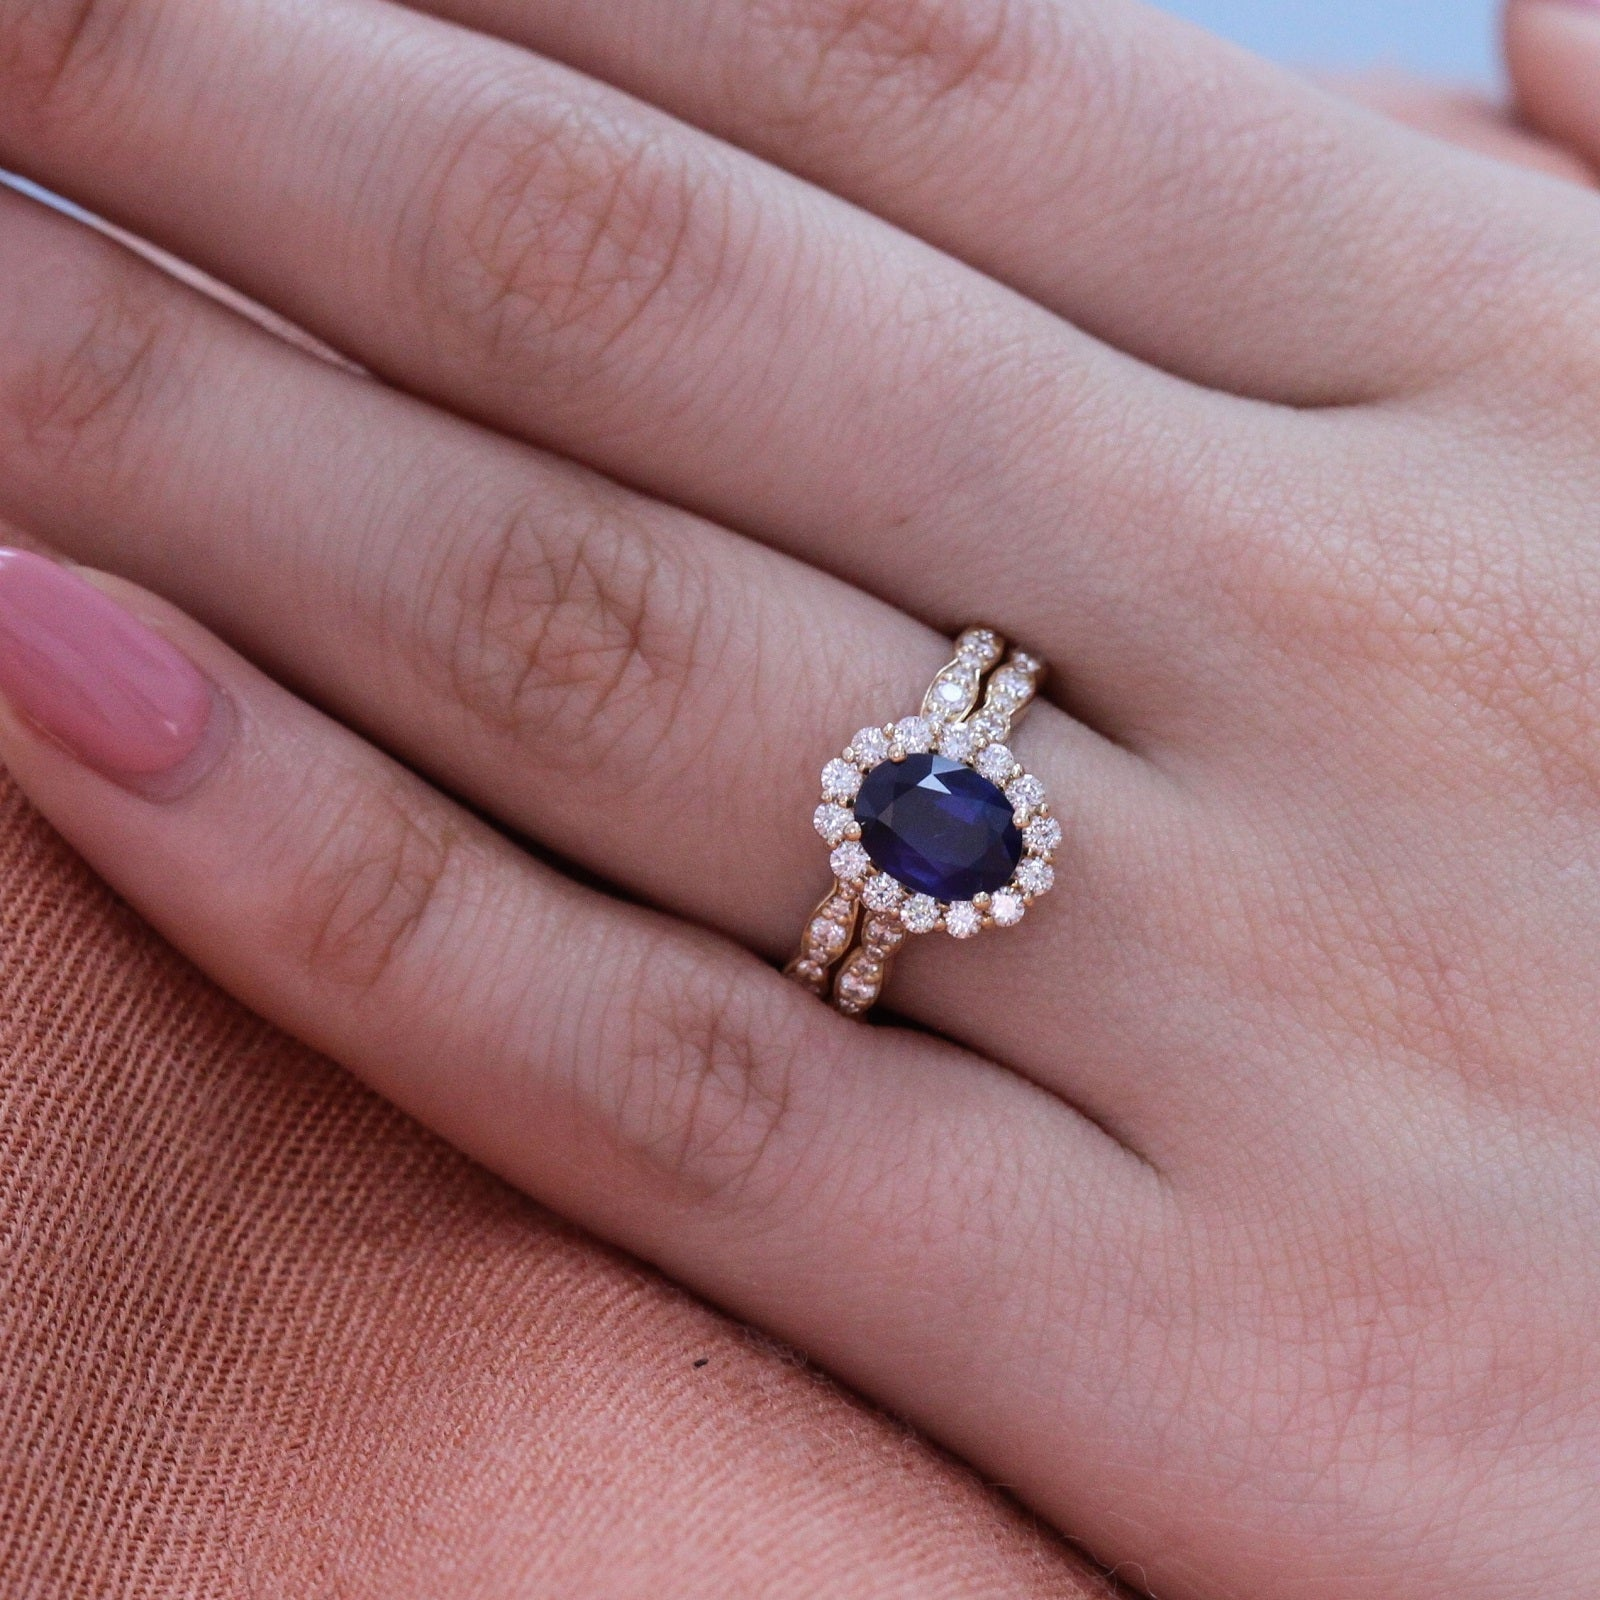 Luna Halo Bridal Set In Scalloped Band W Oval Sapphire And Diamond